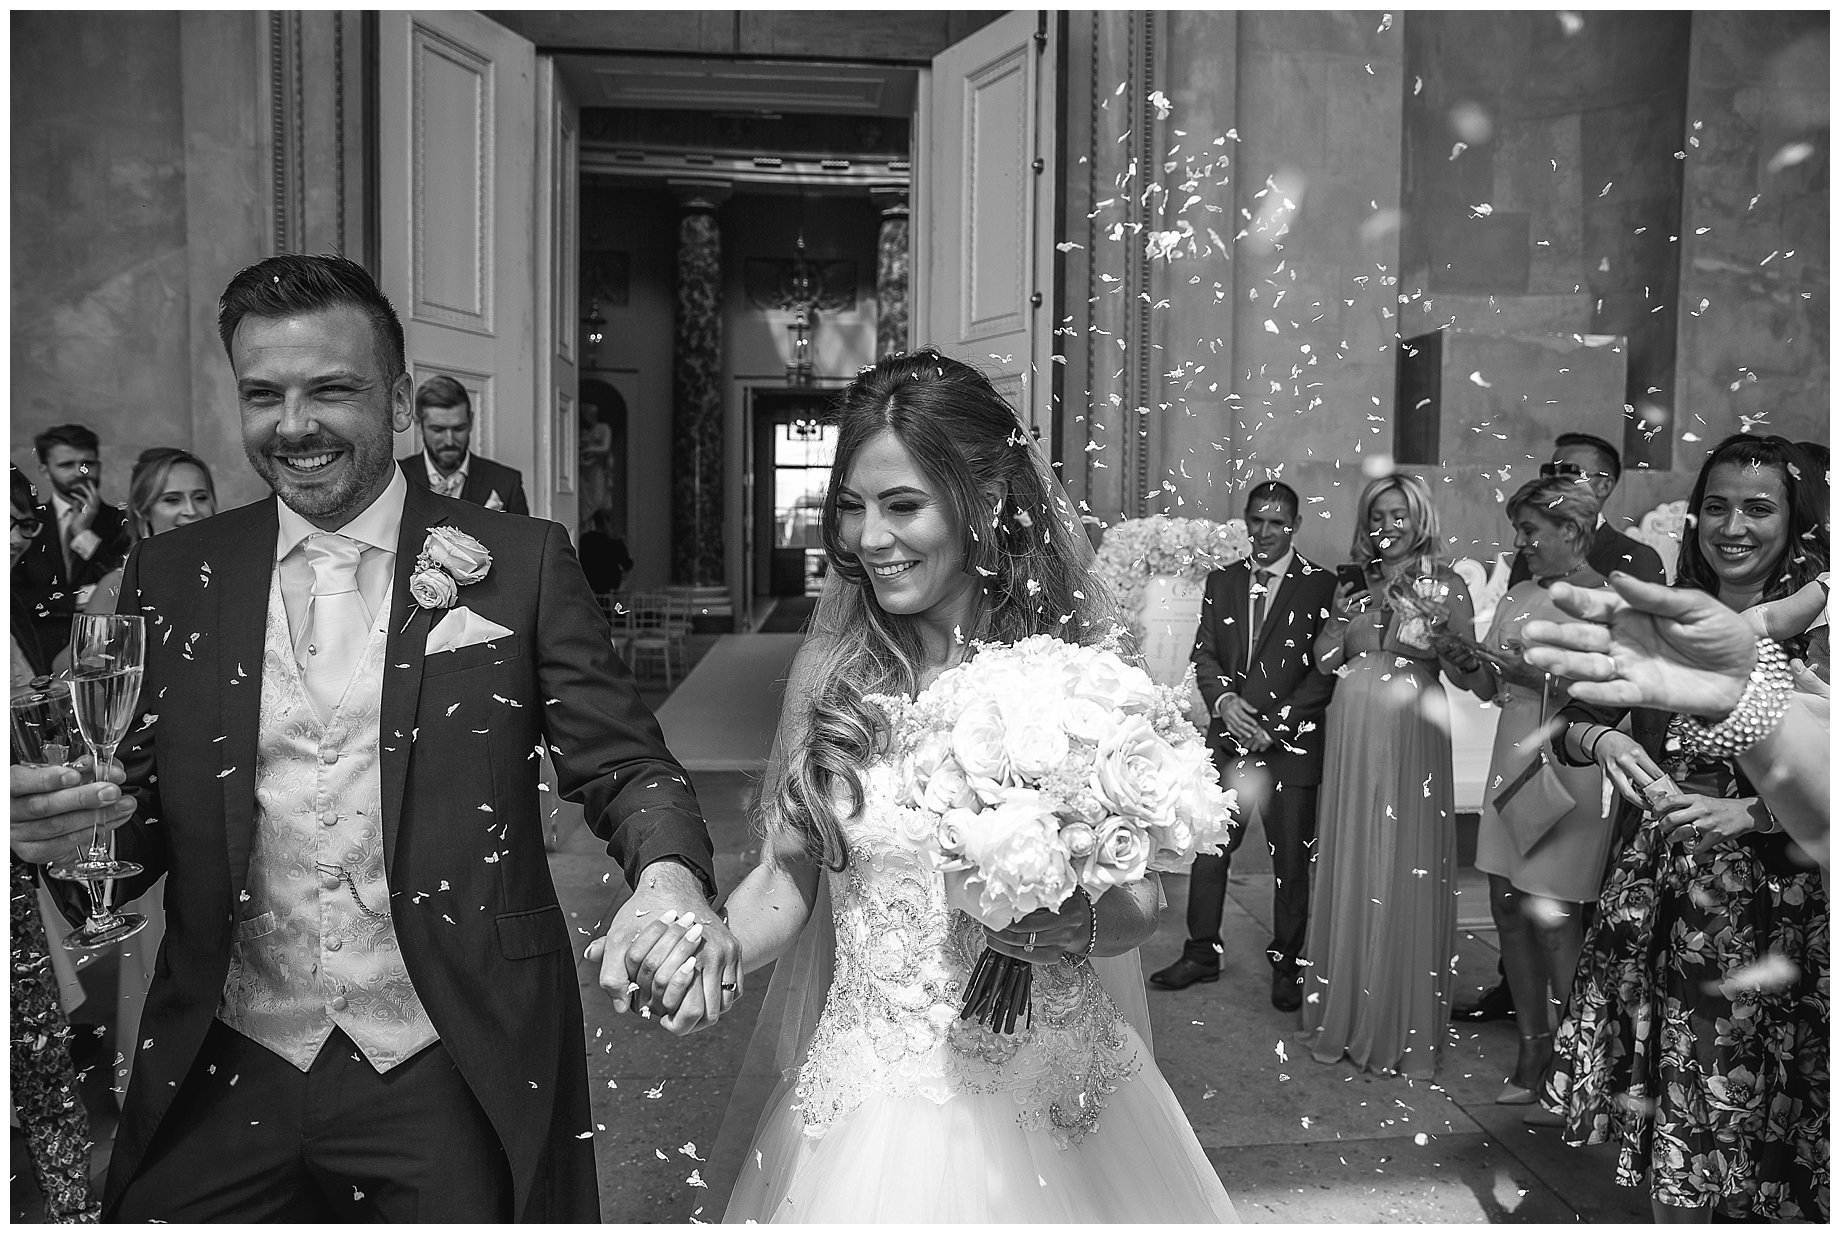 Stowe House Wedding photography with confetti